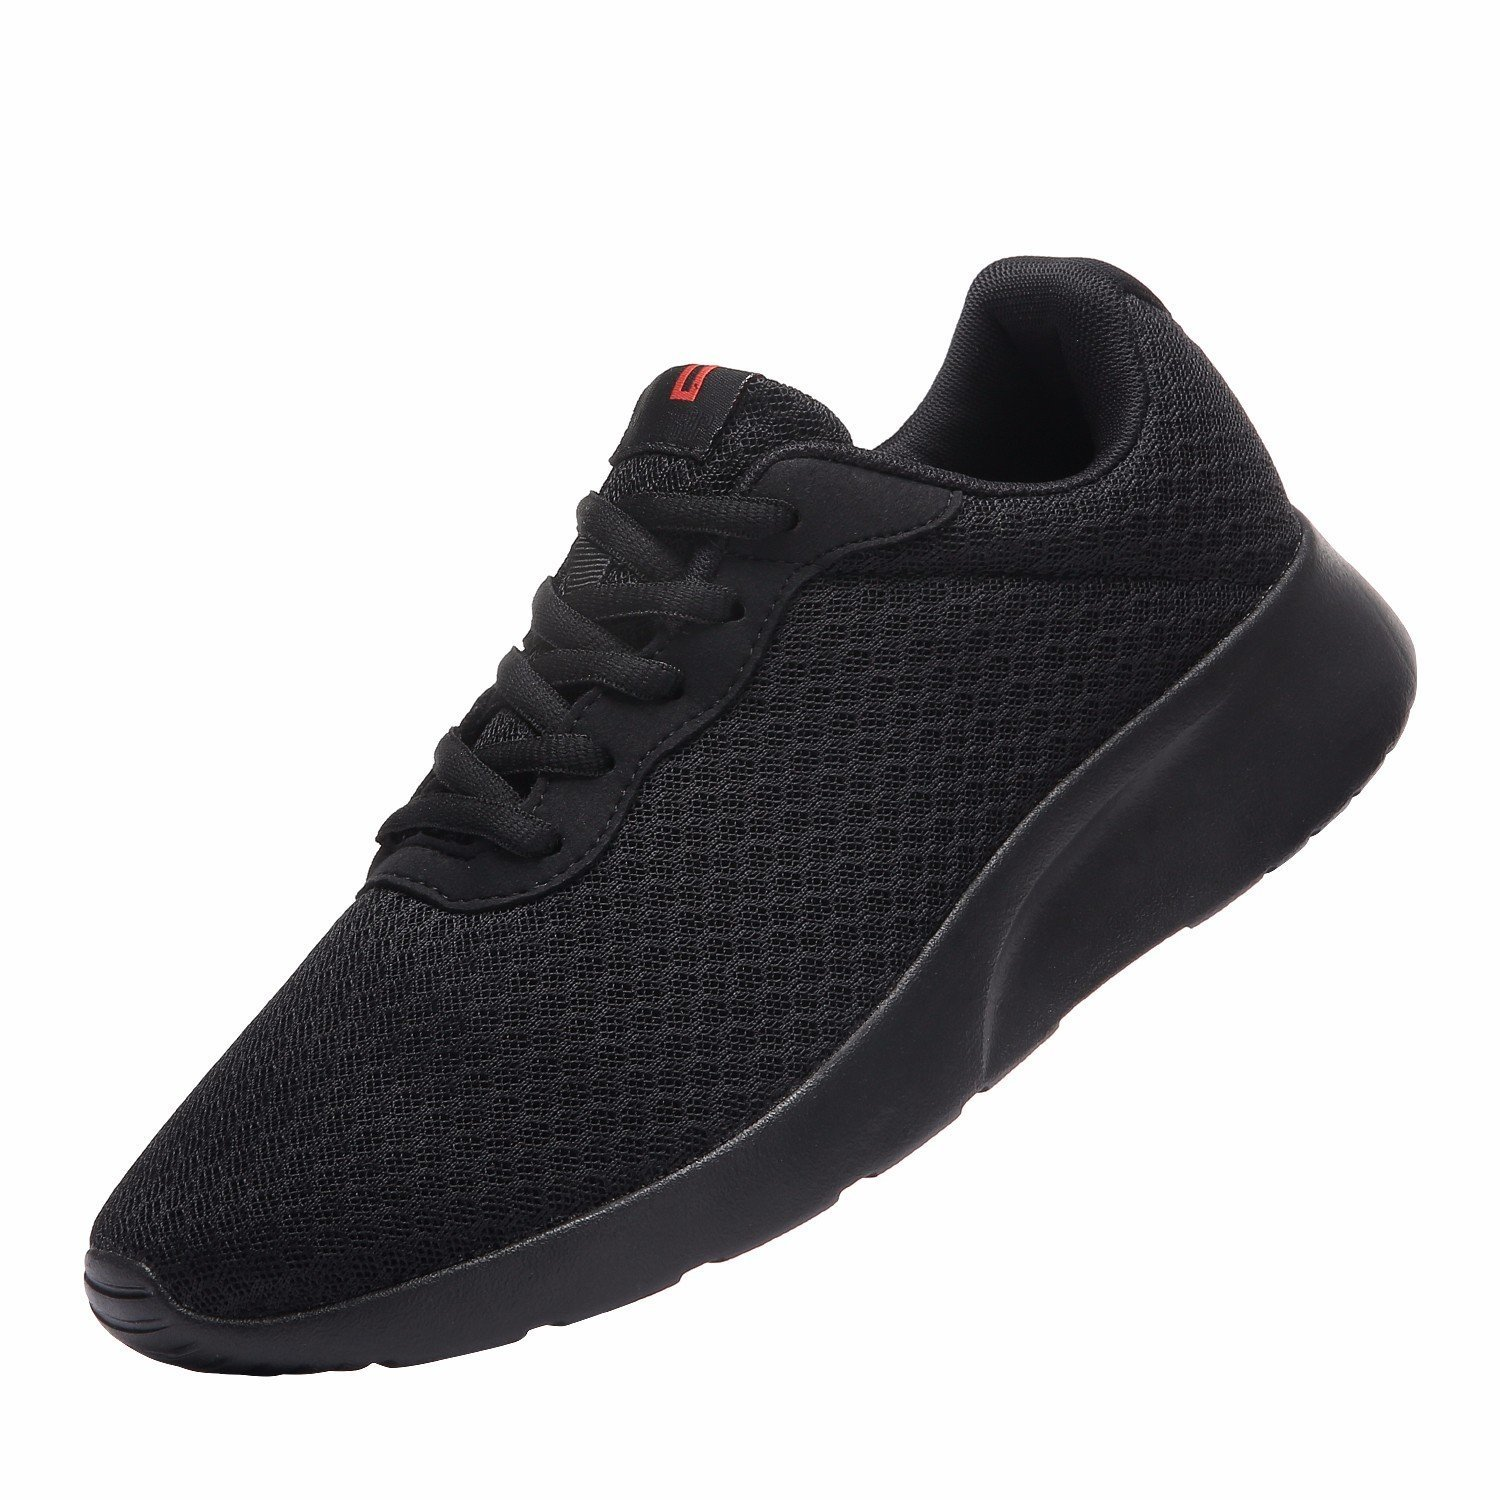 b920894c0 MAIITRIP Men's Trainers Road Running Shoes Casual Mesh Athletic Sneakers  for Gym Sports Fitness: Amazon.co.uk: Shoes & Bags